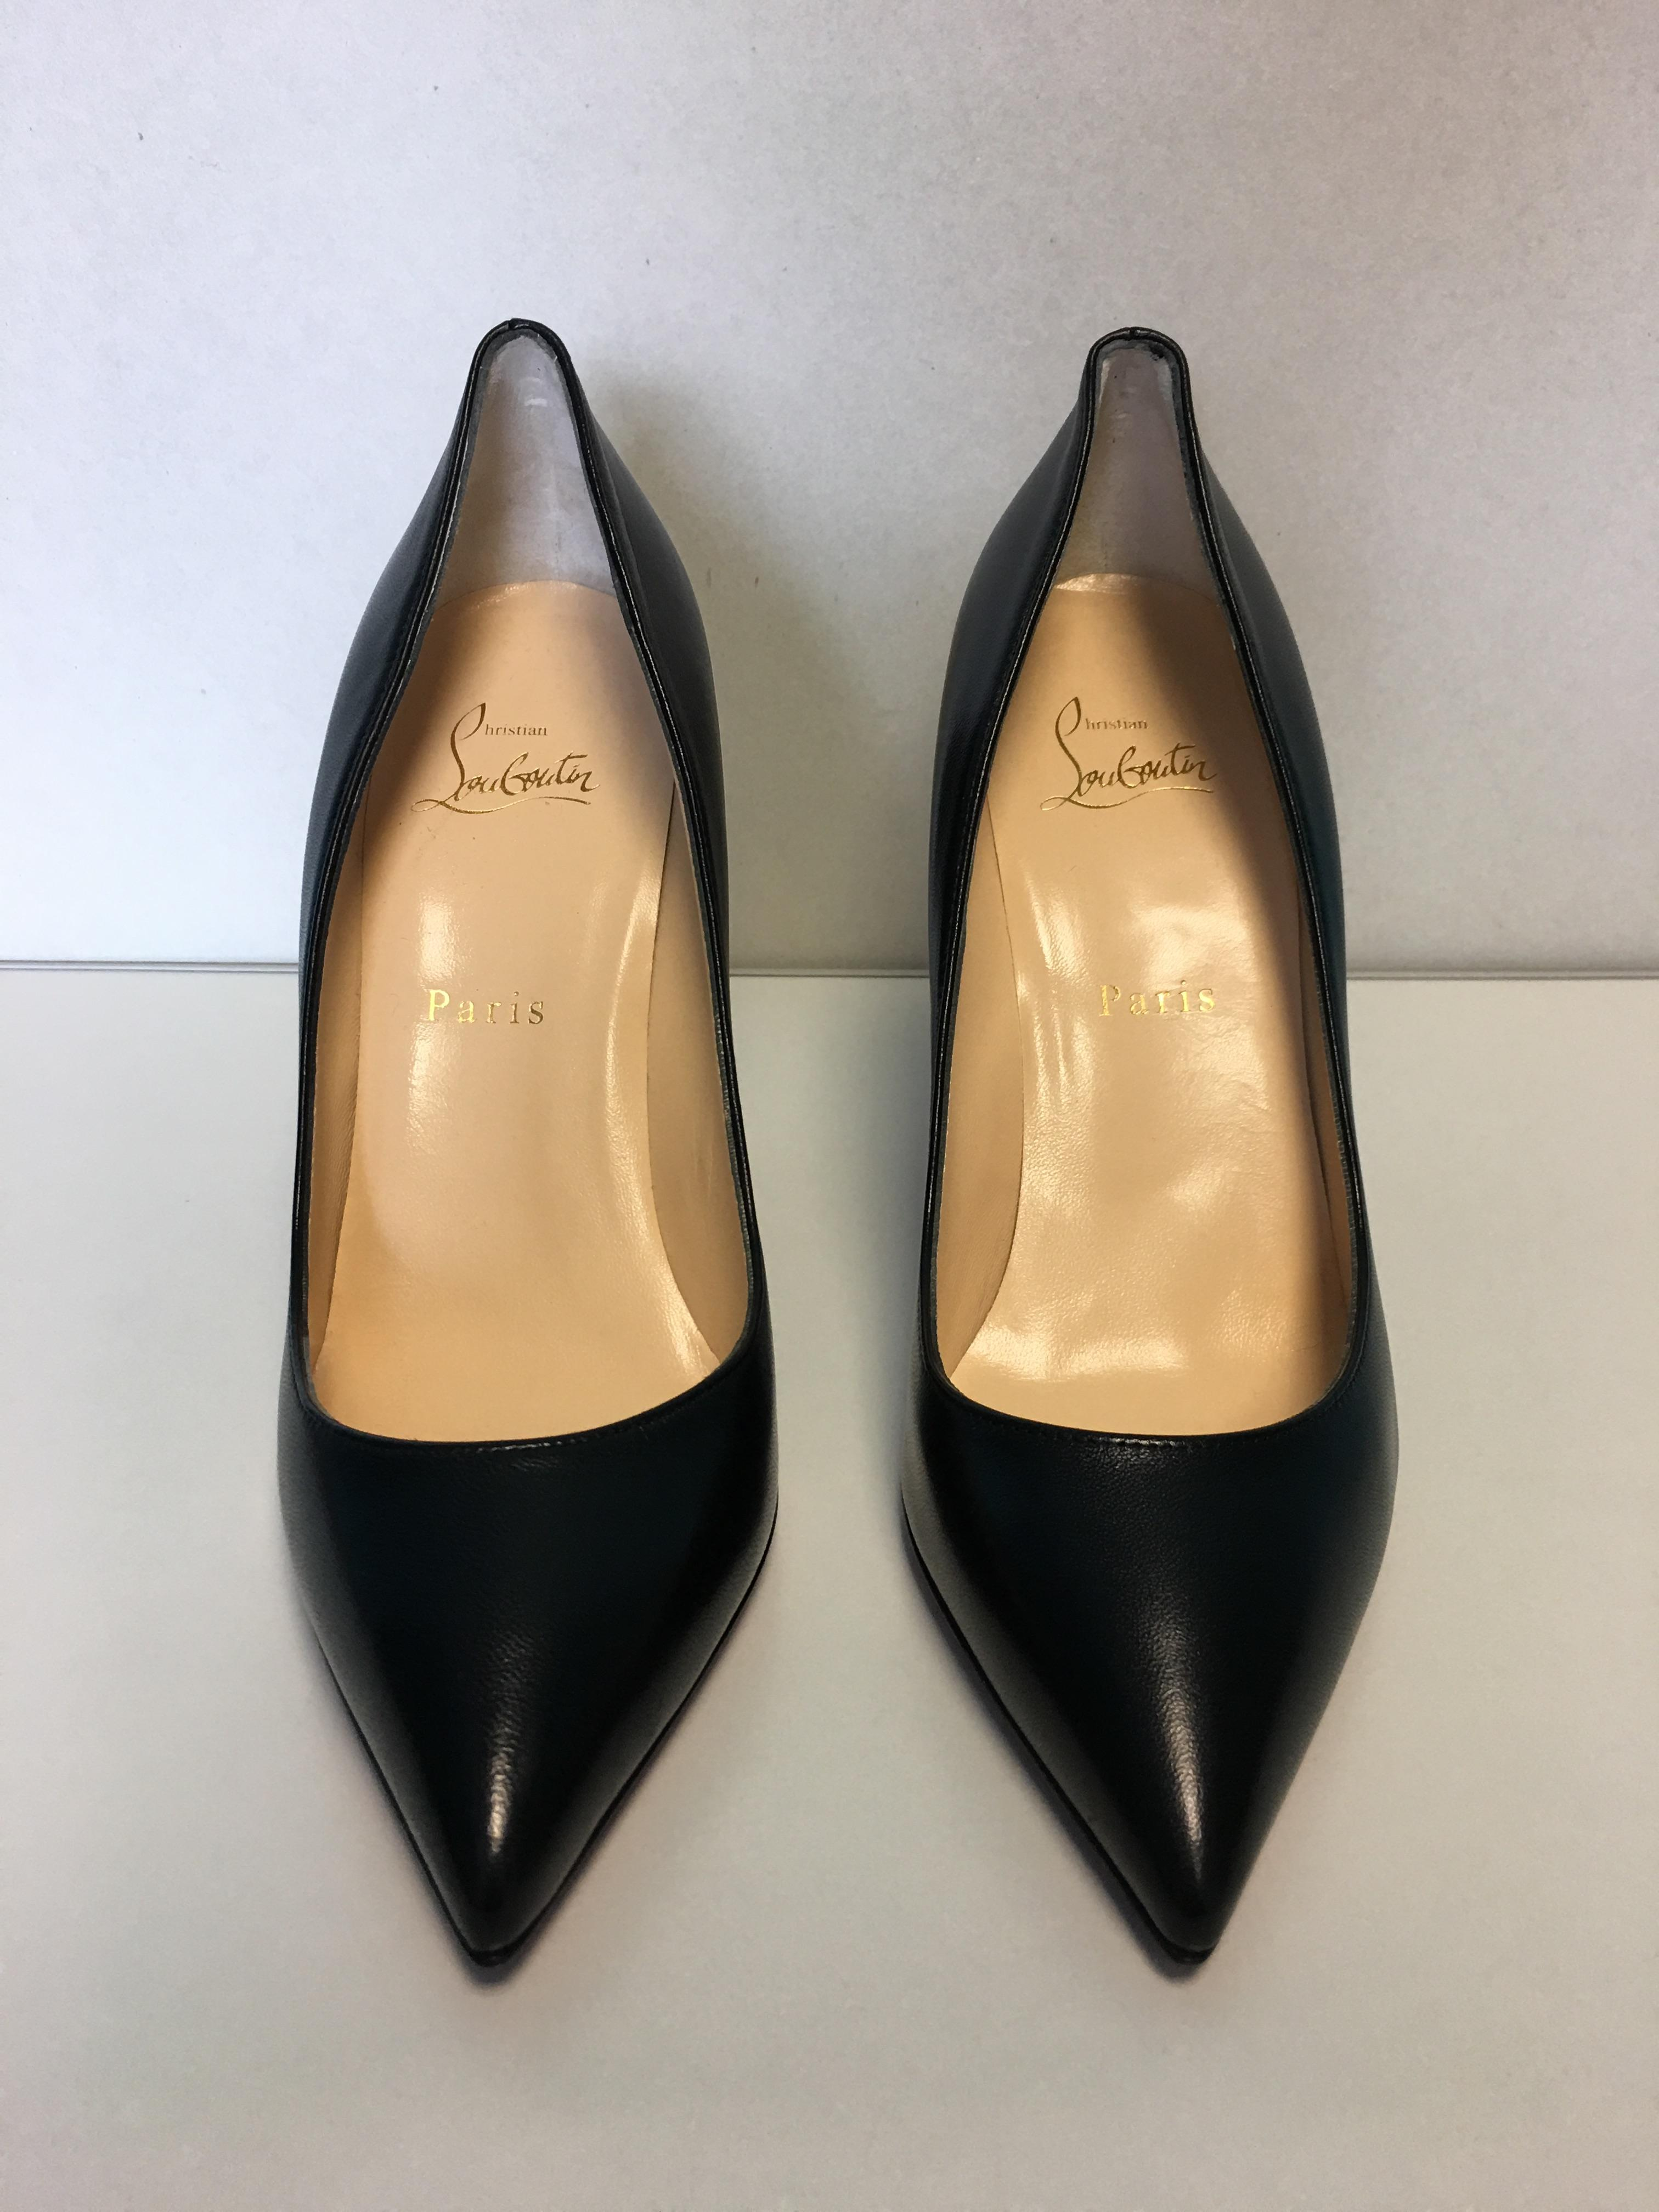 6511483d01 ... Christian Louboutin Black Classic Pigalle Pigalle Pigalle 100mm Nappa  Shiny Leather Point-toe Pumps Size ...